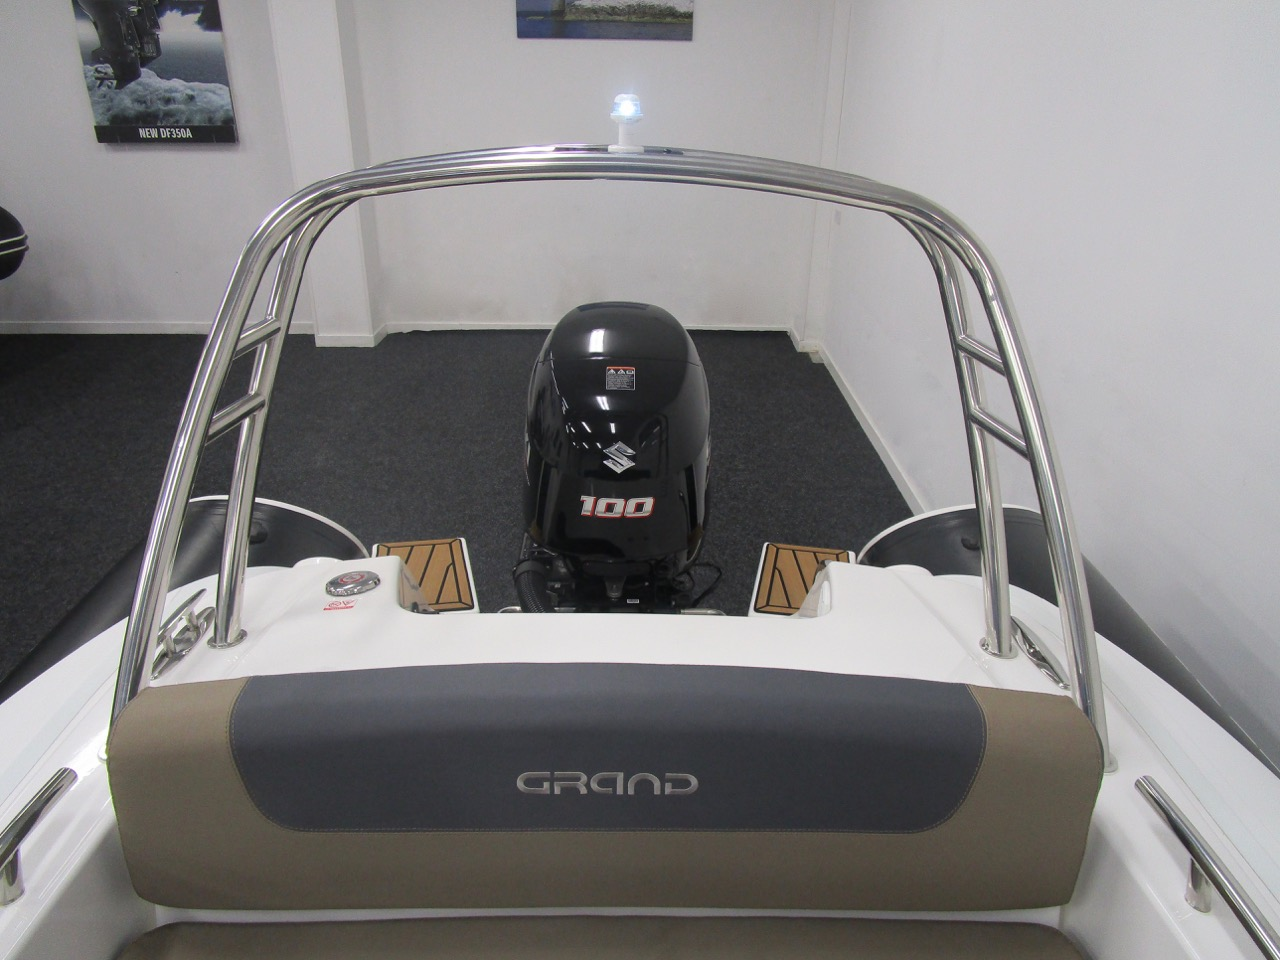 GRAND G500 RIB rear seat, A-frame and engine